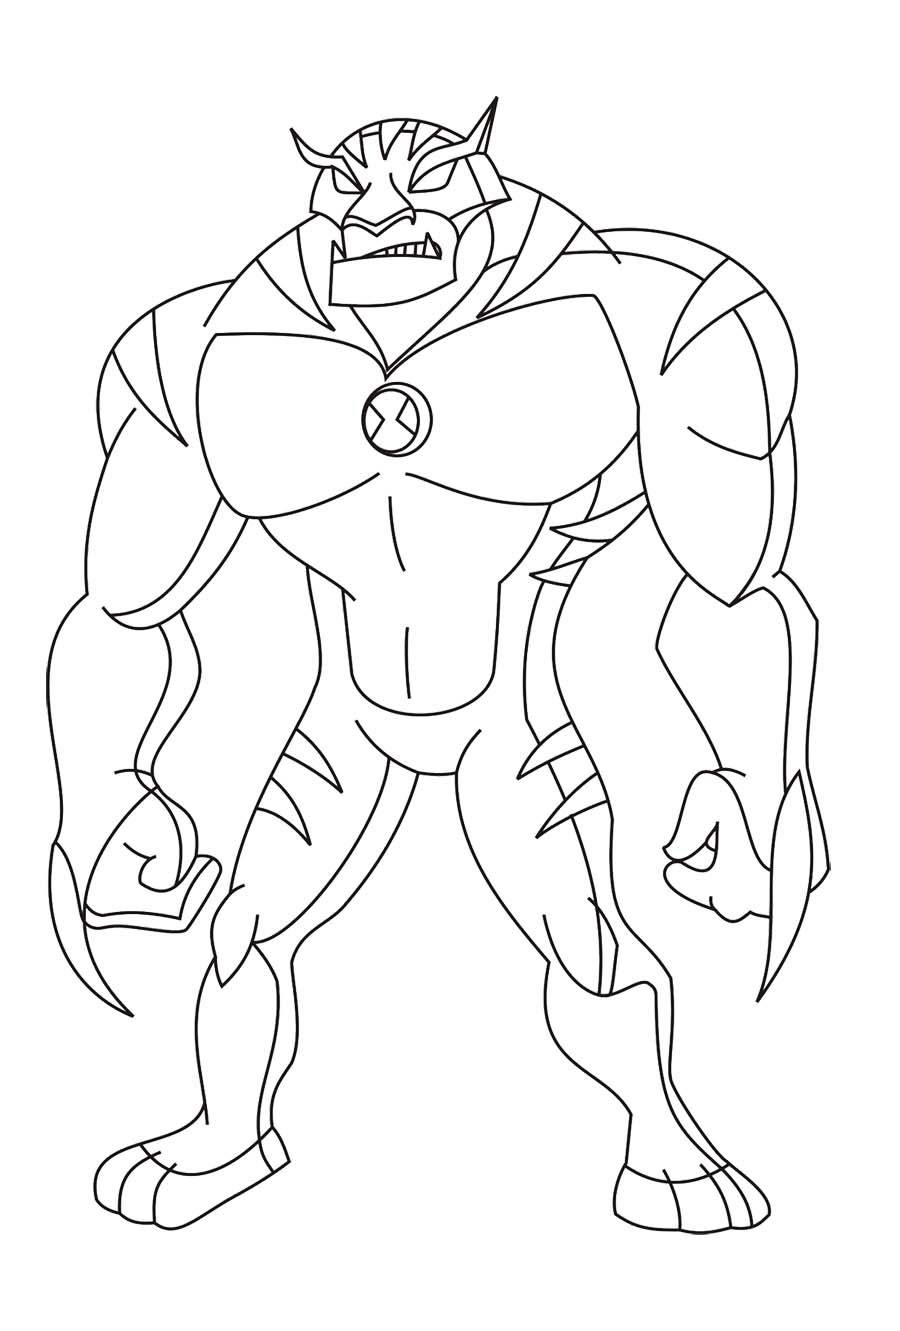 rath alien change ben ten coloring page | ben 10 coloring page ... - Ben Ten Alien Force Coloring Pages